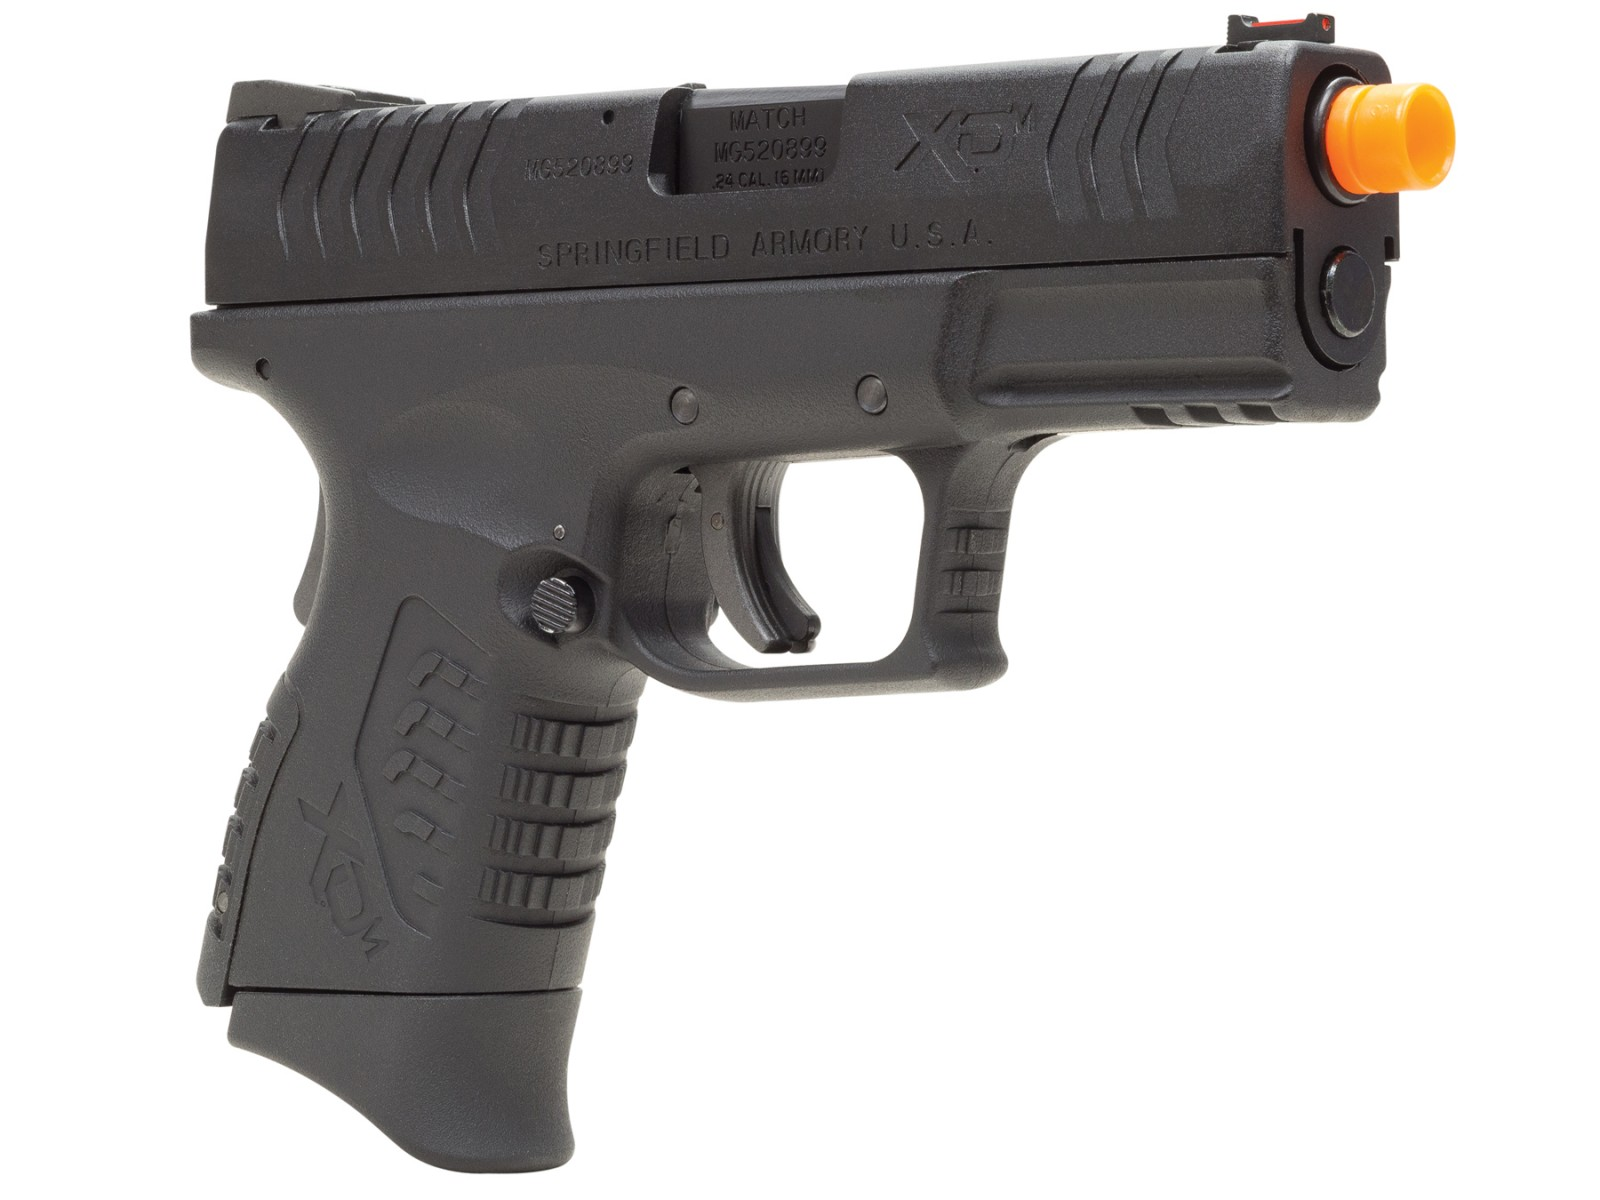 Springfield_Armory_XDM_38_GBB_Airsoft_Pistol_Black_6mm